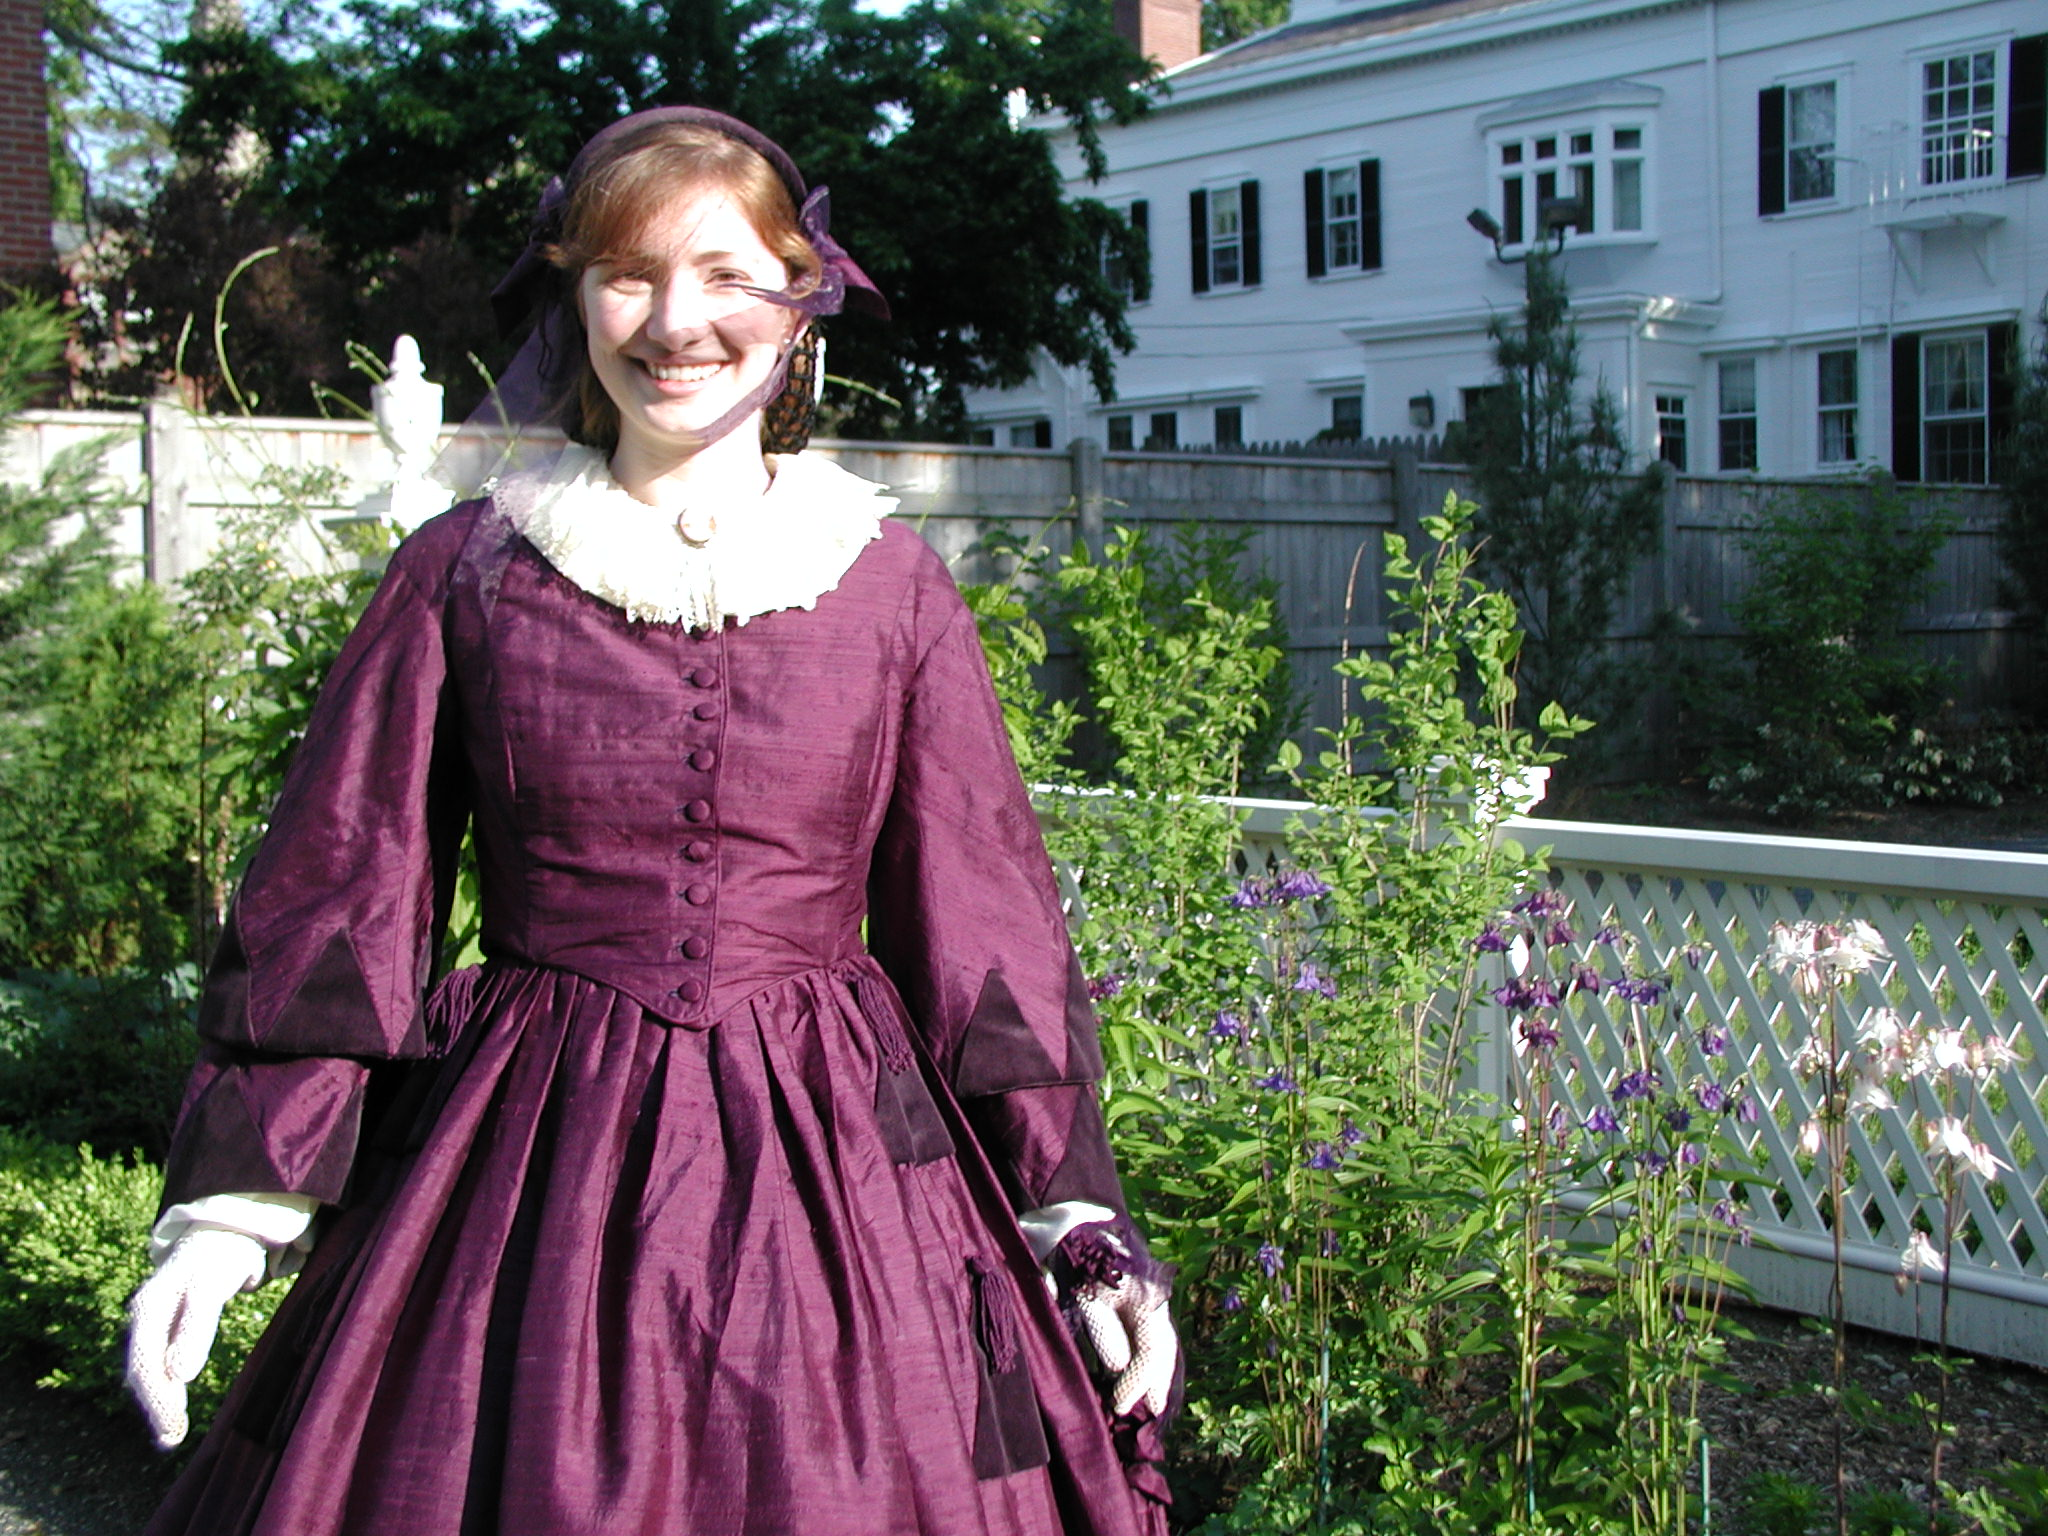 The Author as Fanny Longfellow, when working for Longfellow NHS, in the garden.